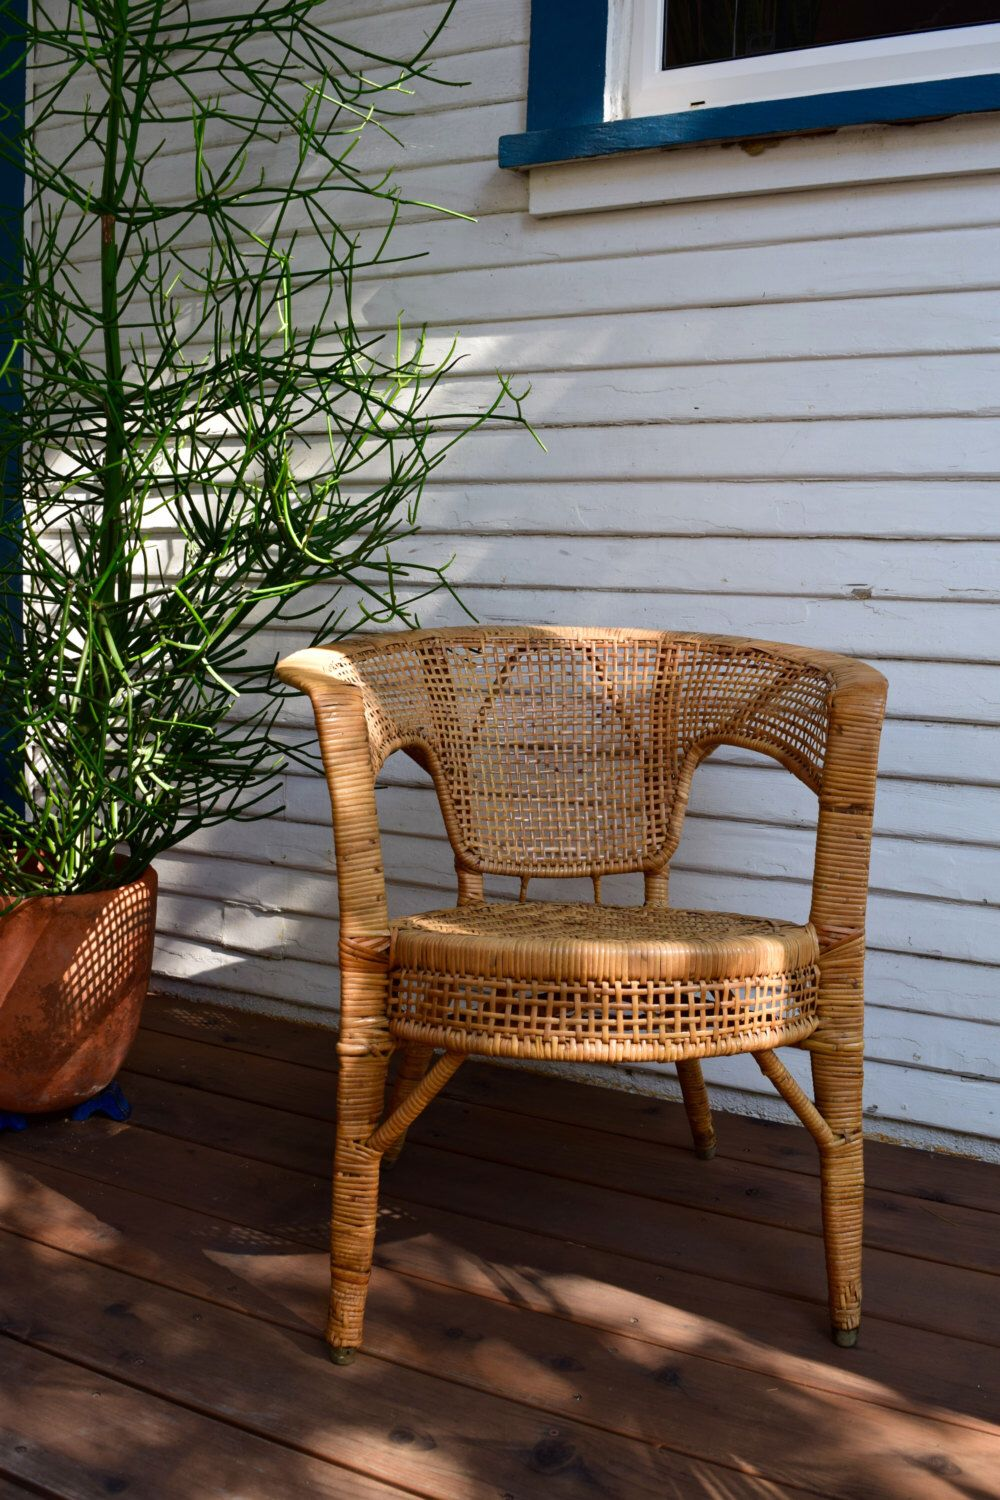 Vintage Woven Cane Occasional Chair ∆∆∆ This Beautiful Vintage Chair Is The  Perfect Addition To Any Corner To Add An Authentic Bohemian